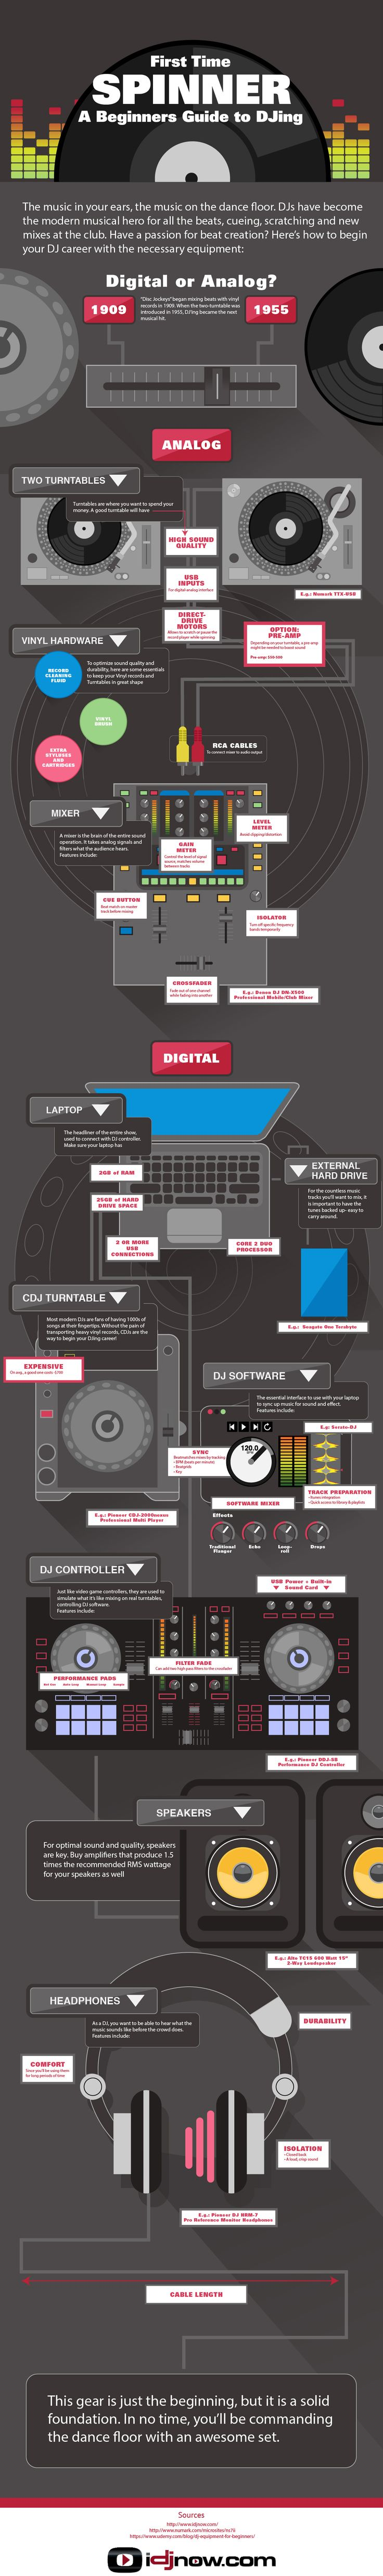 First Time Spinner: A Beginner's Guide to DJing - Do you fancy an infographic? There are a lot of them online, but if you want your own please visit http://www.linfografico.com/prezzi/ Online girano molte infografiche, se ne vuoi realizzare una tutta tua visita http://www.linfografico.com/prezzi/